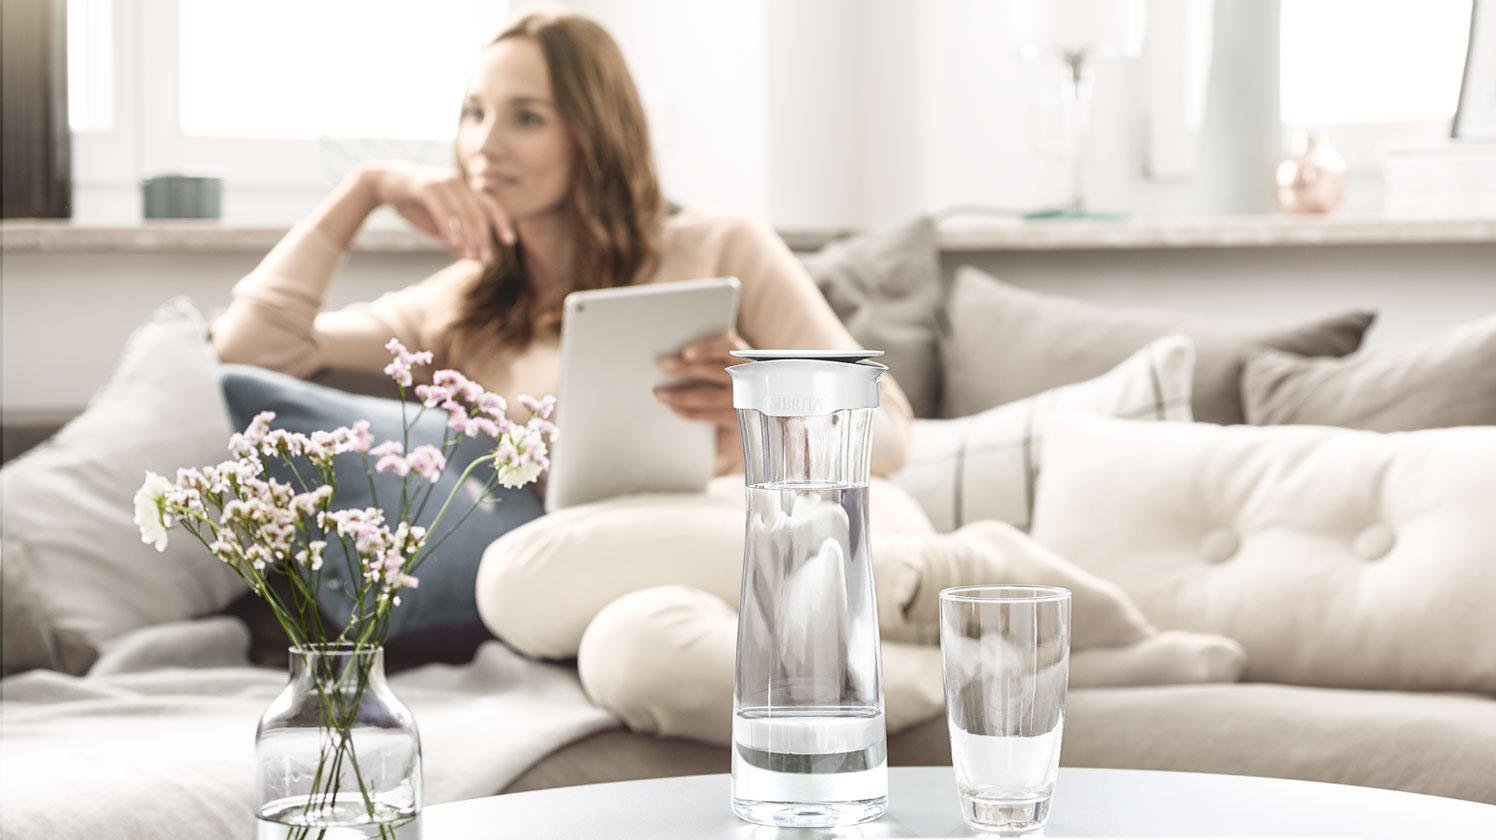 BRITA fill&serve Mind woman couch